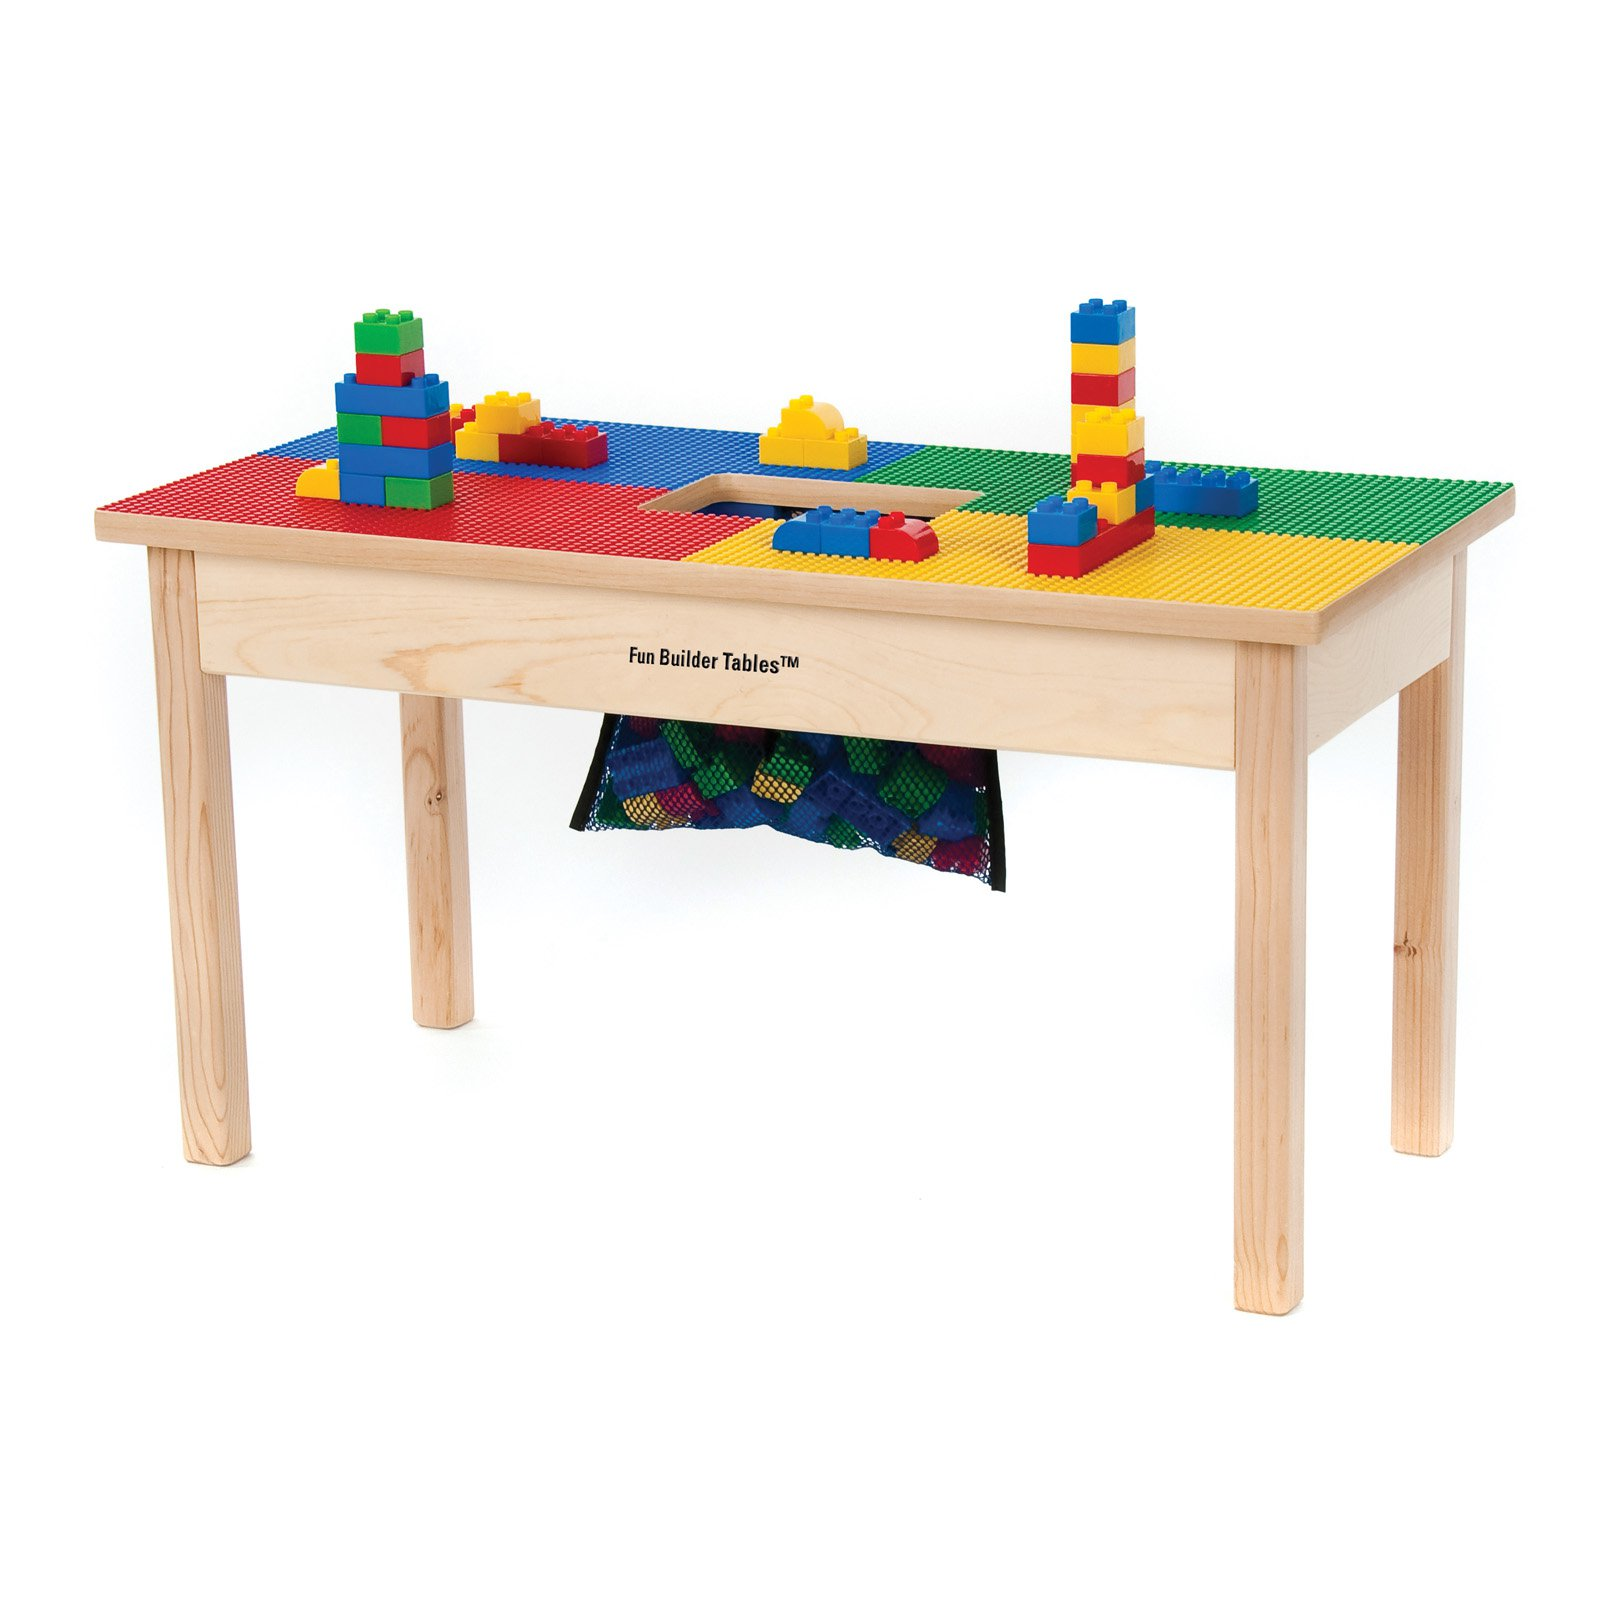 Synergy Fun Builder 16 x 32 in. Building Block Table